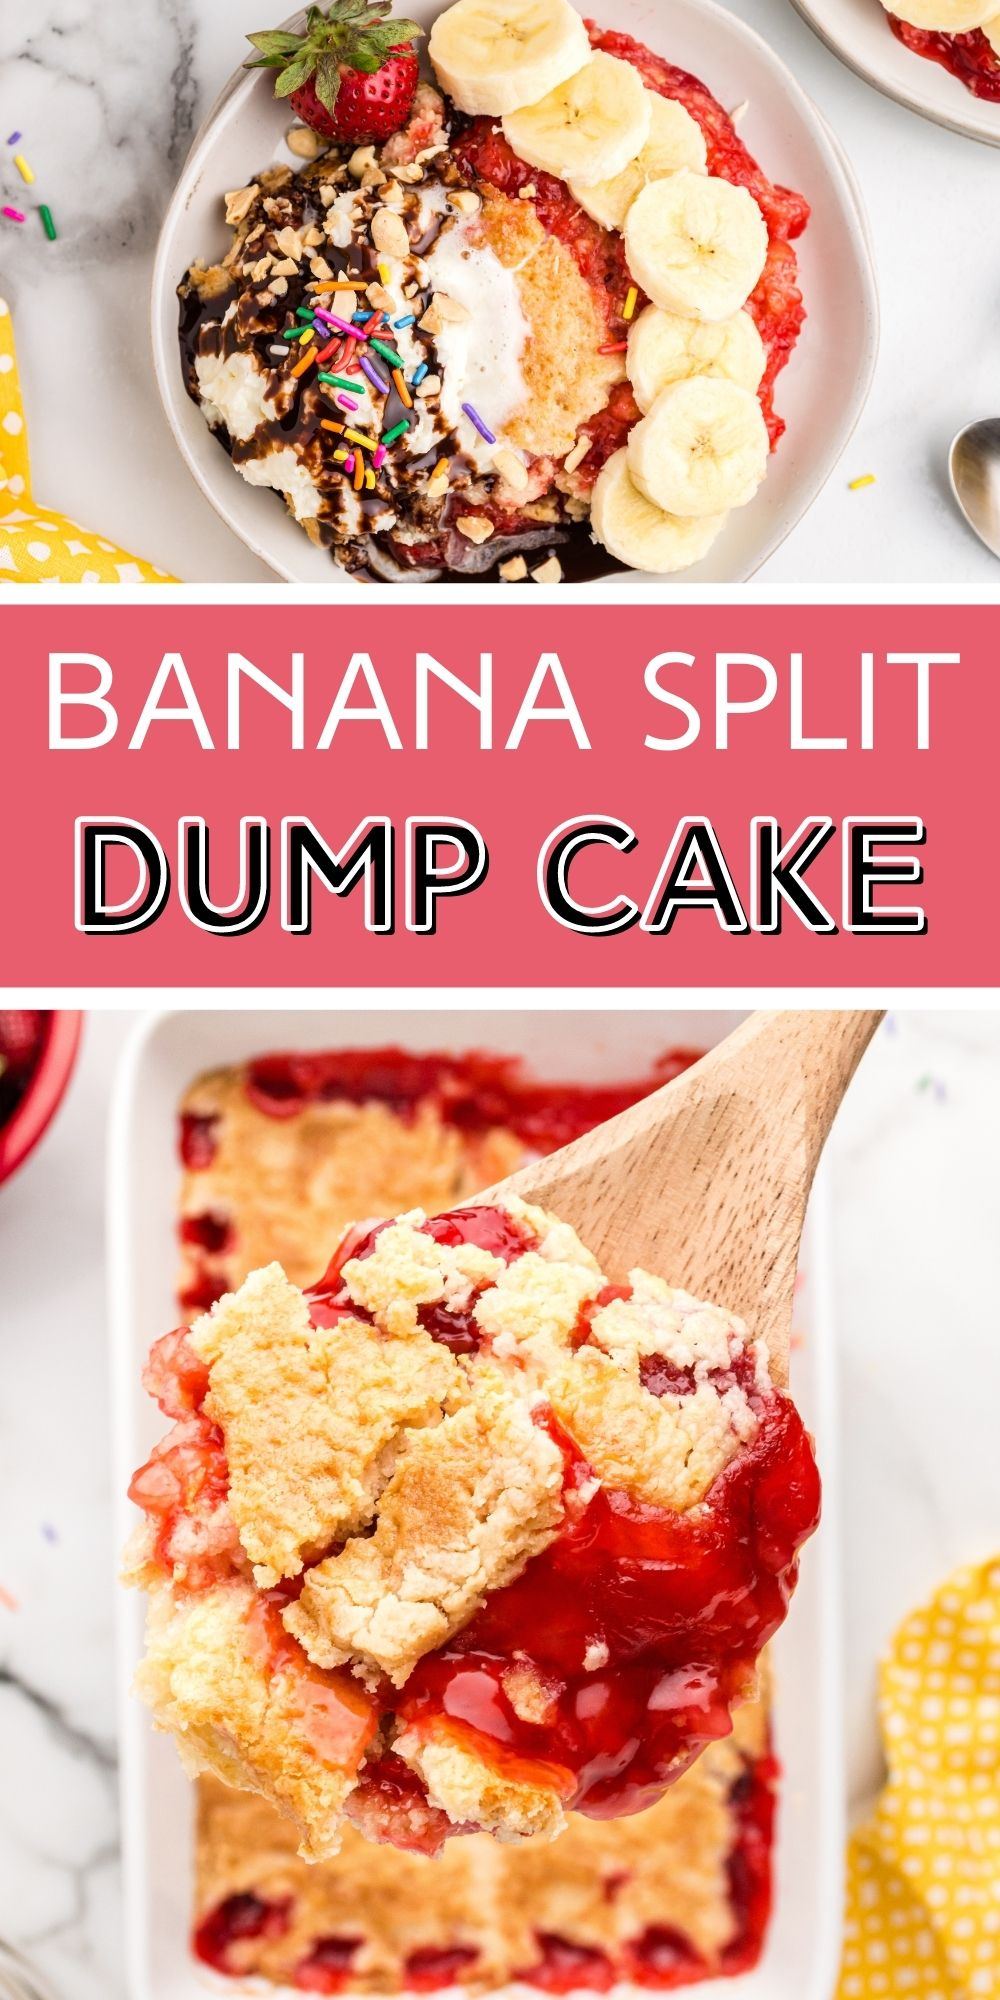 With this Banana Split Dump Cake, you now get to enjoy two extremely crave-worthy desserts all-in-one! via @familyfresh